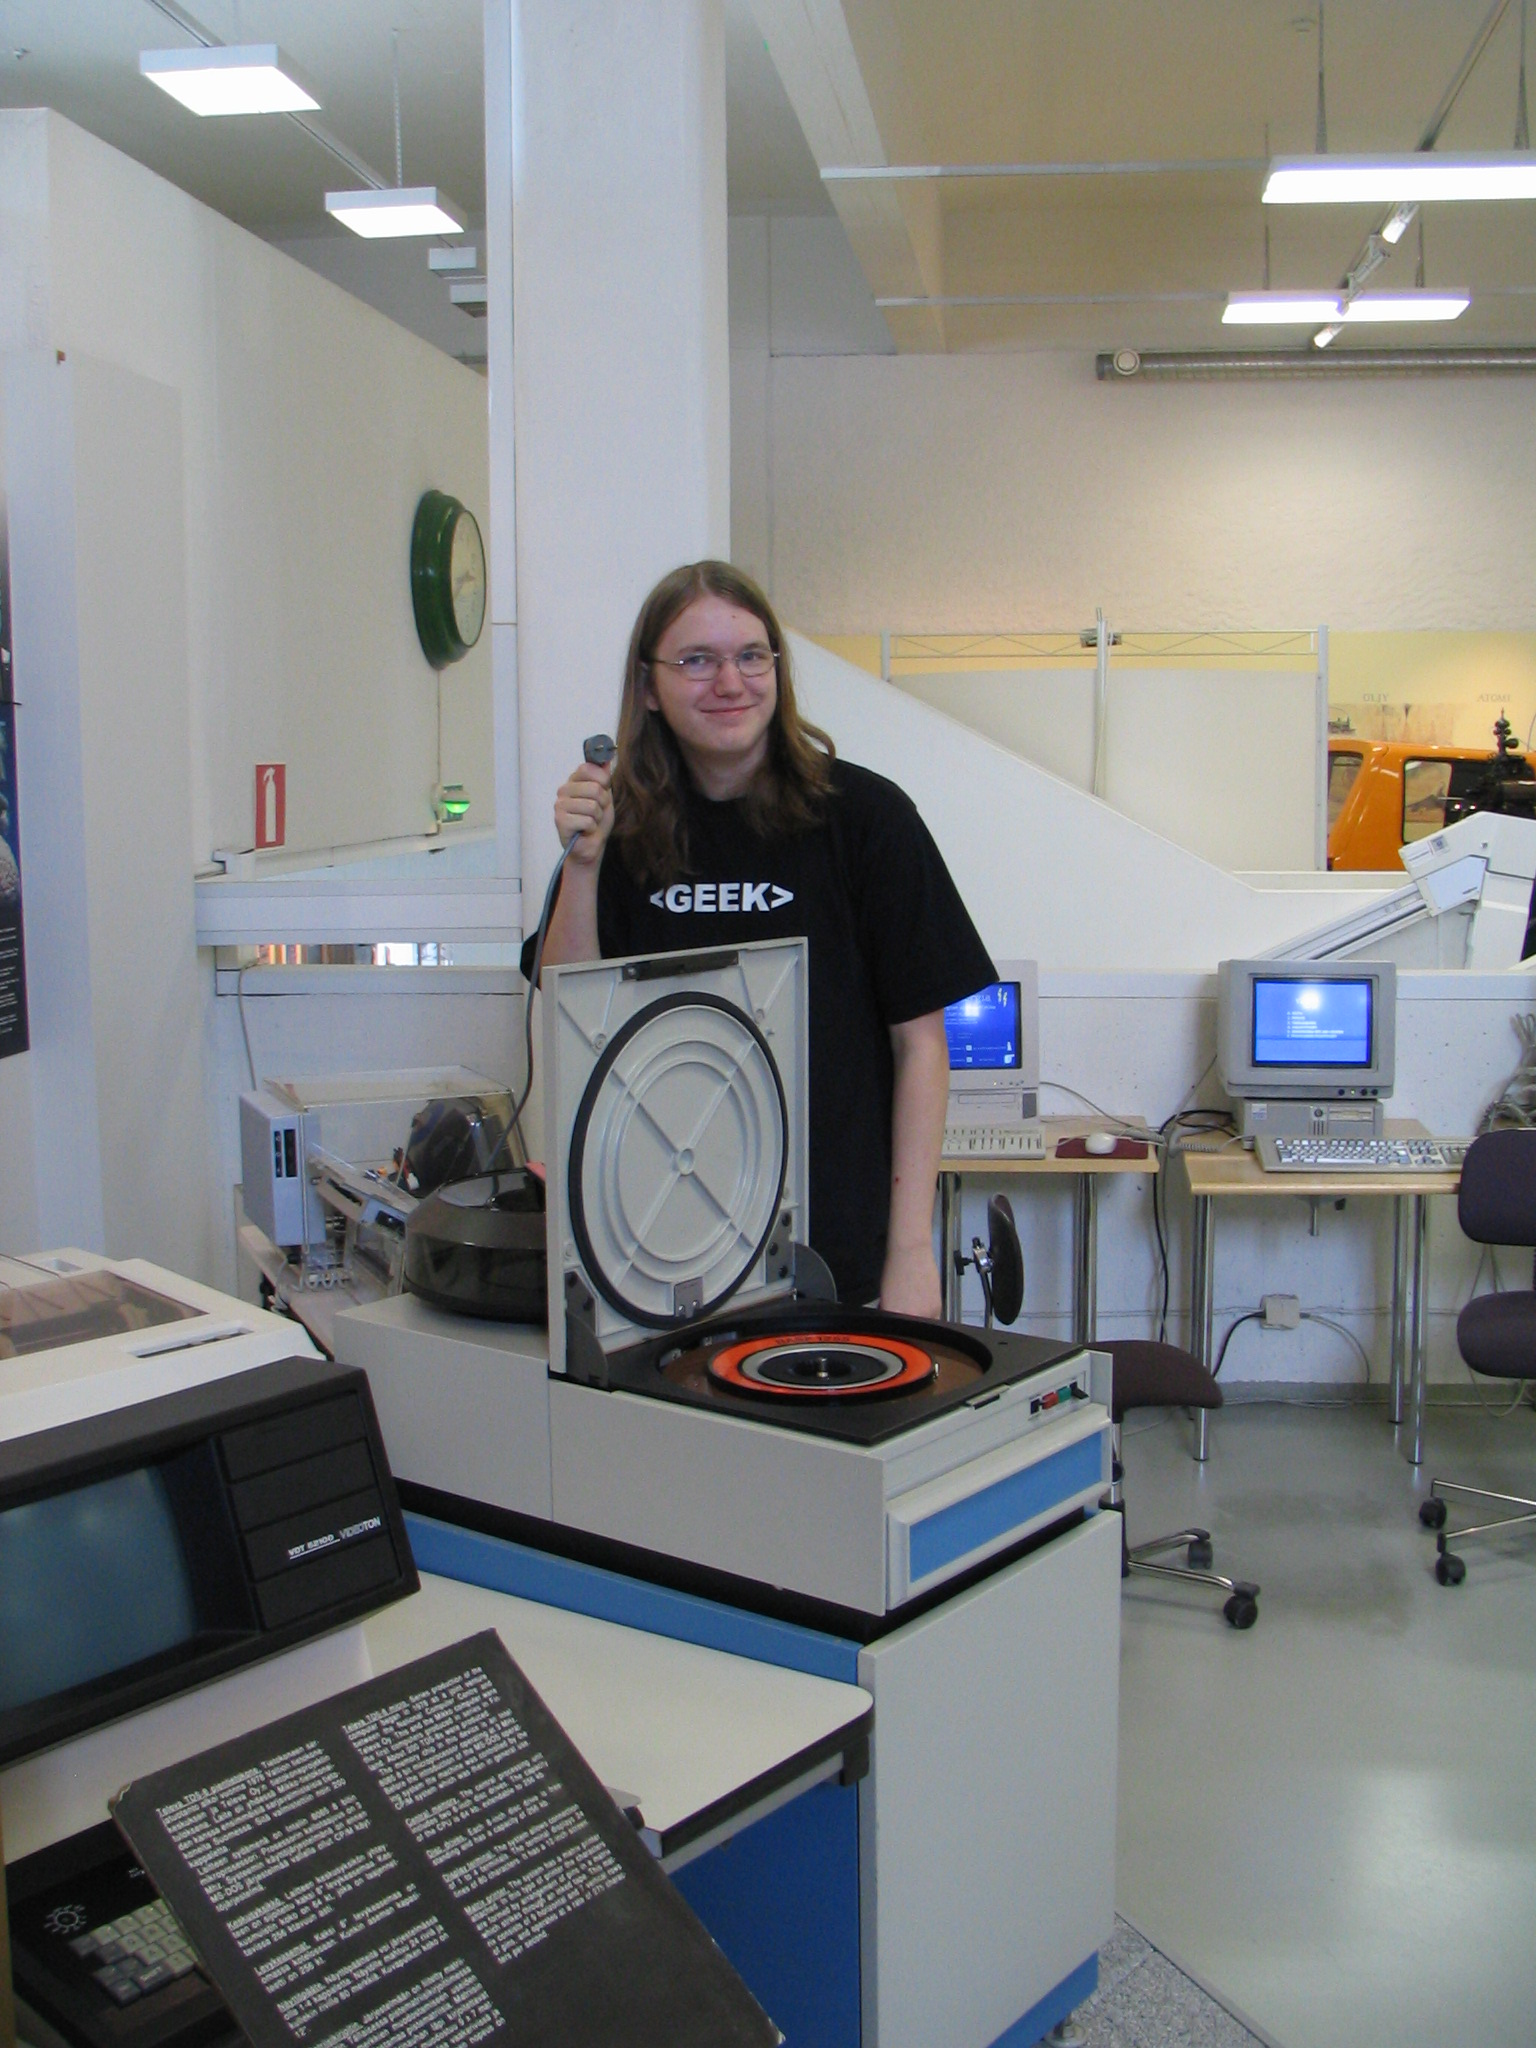 Tore, daring to connect the harddisk - Helsinki Museum of Technology